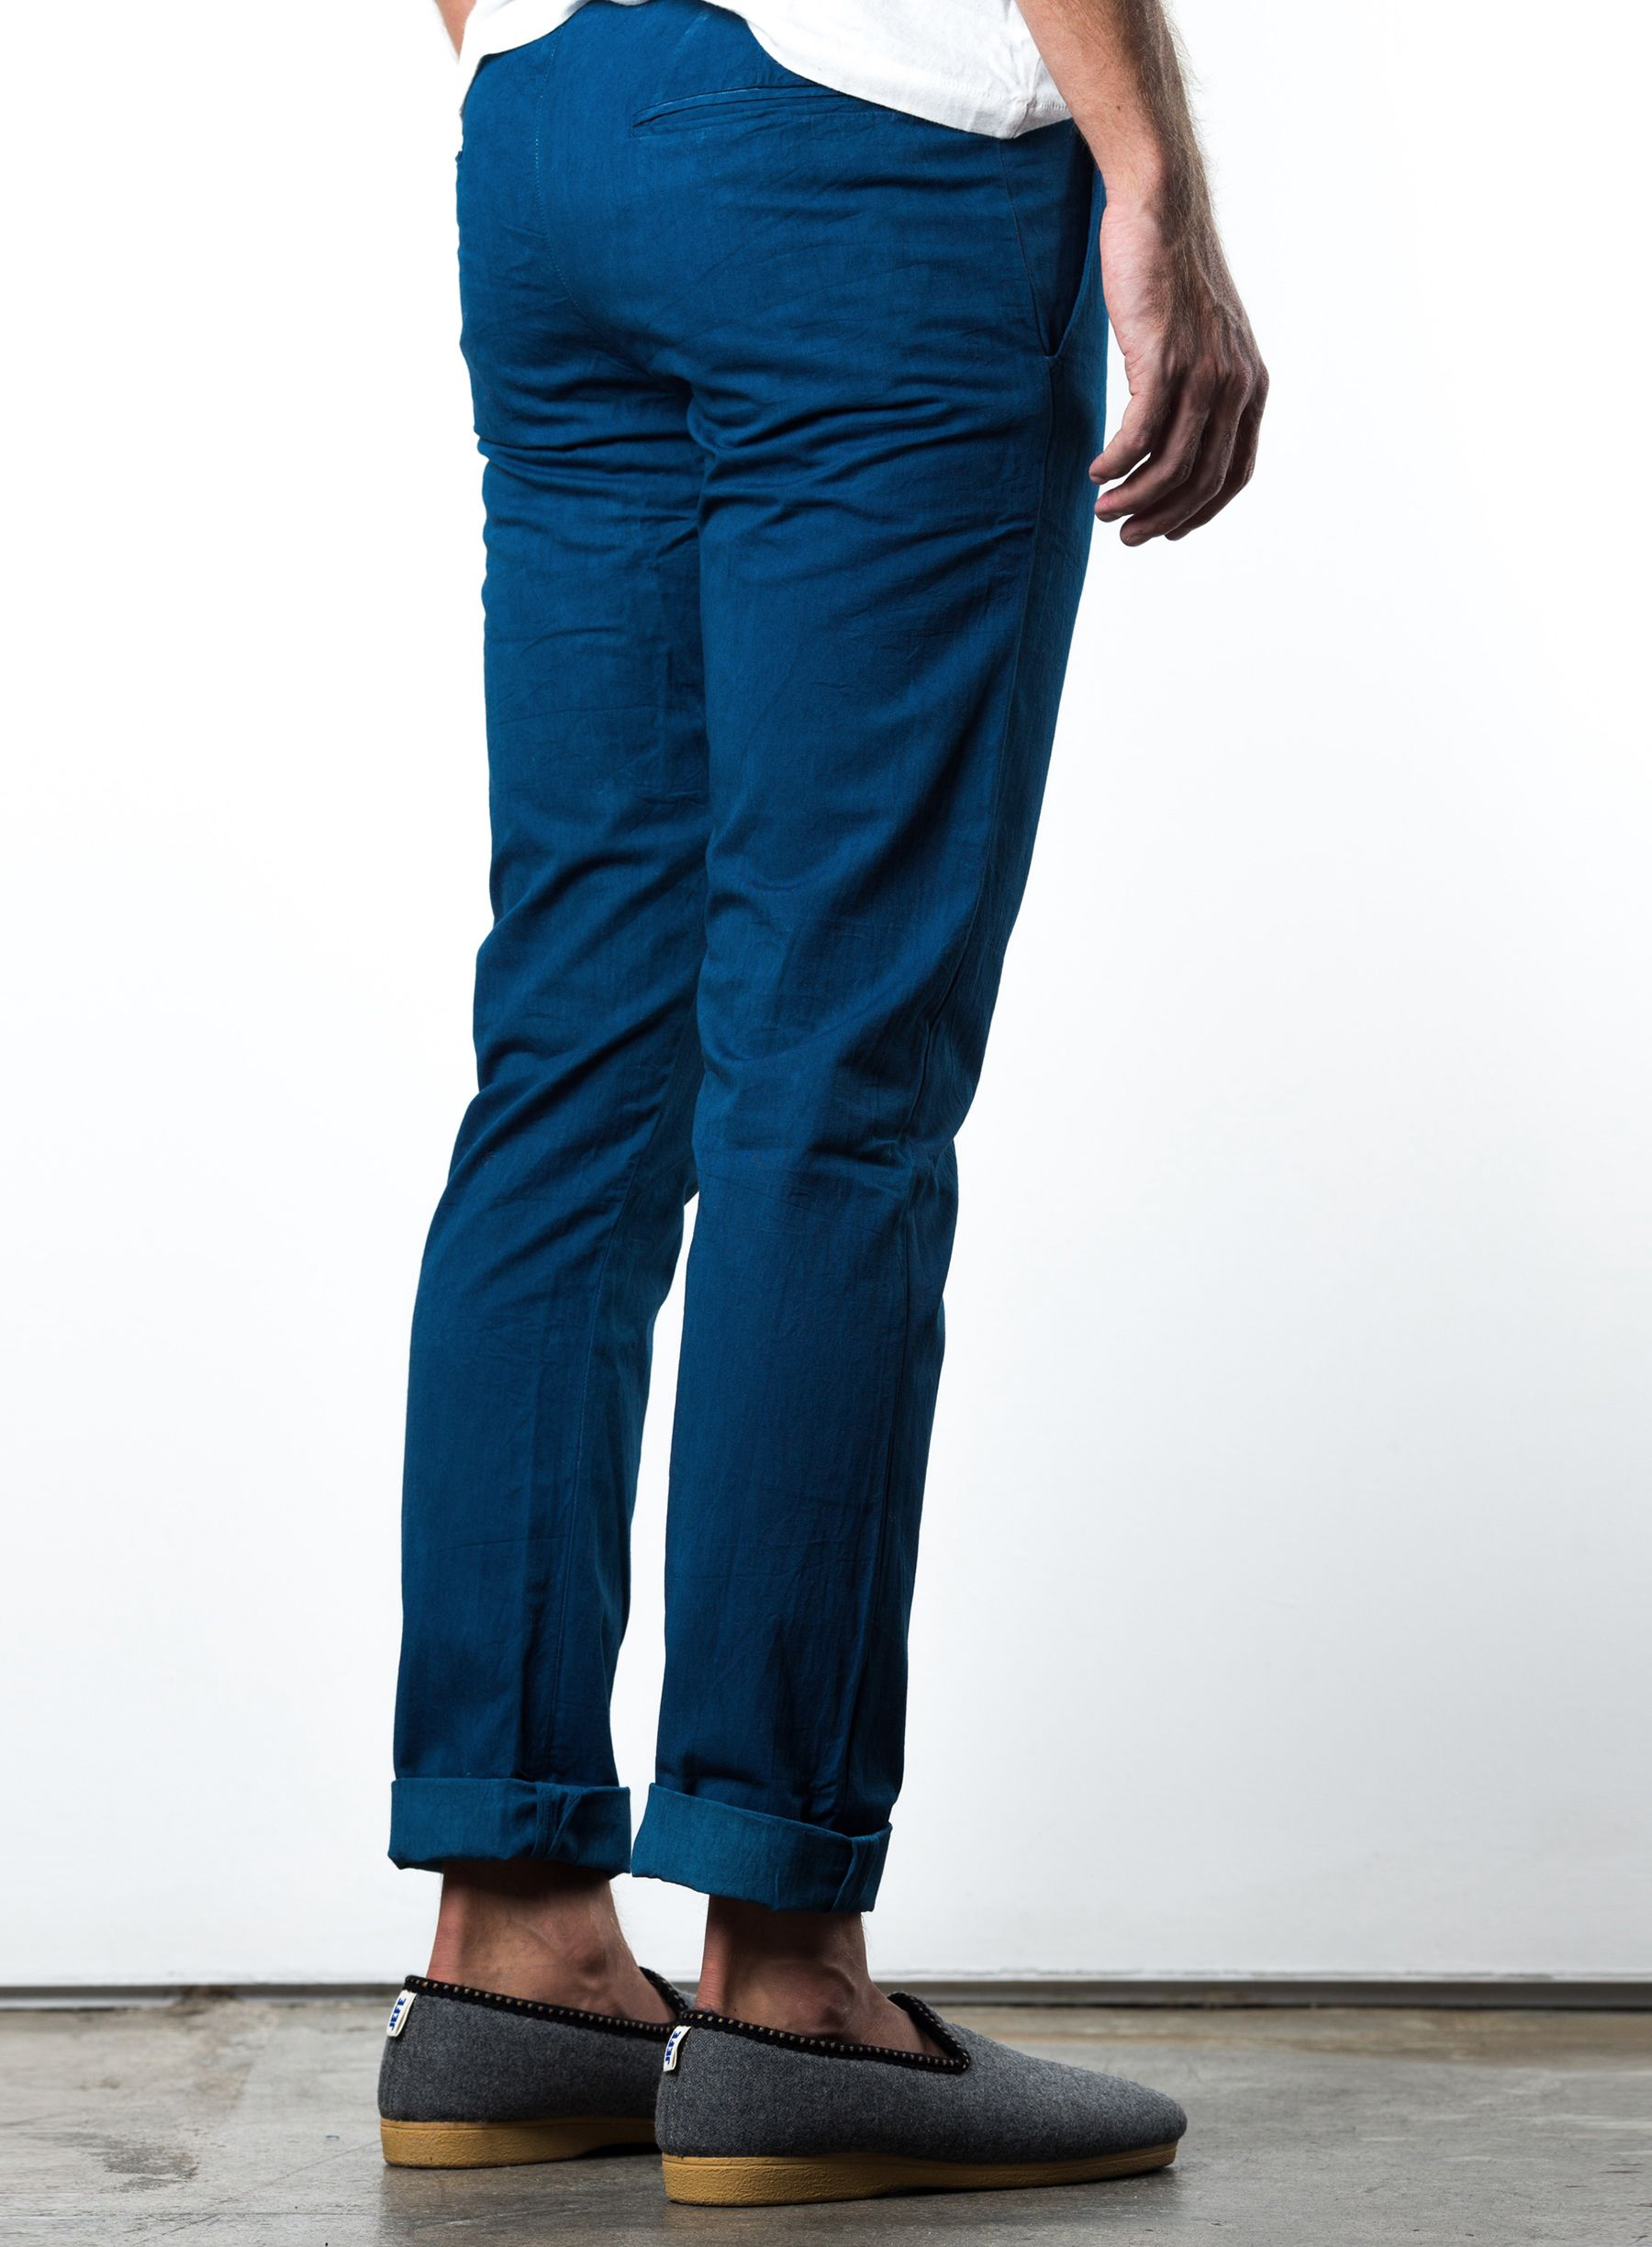 Regaling Dips Indigo Clean Chinos At Industry Dips Indigo Clothing Industry All All Nations Review Industry All Nations Careers Clean Chinos At Industry All houzz-02 Industry Of All Nations